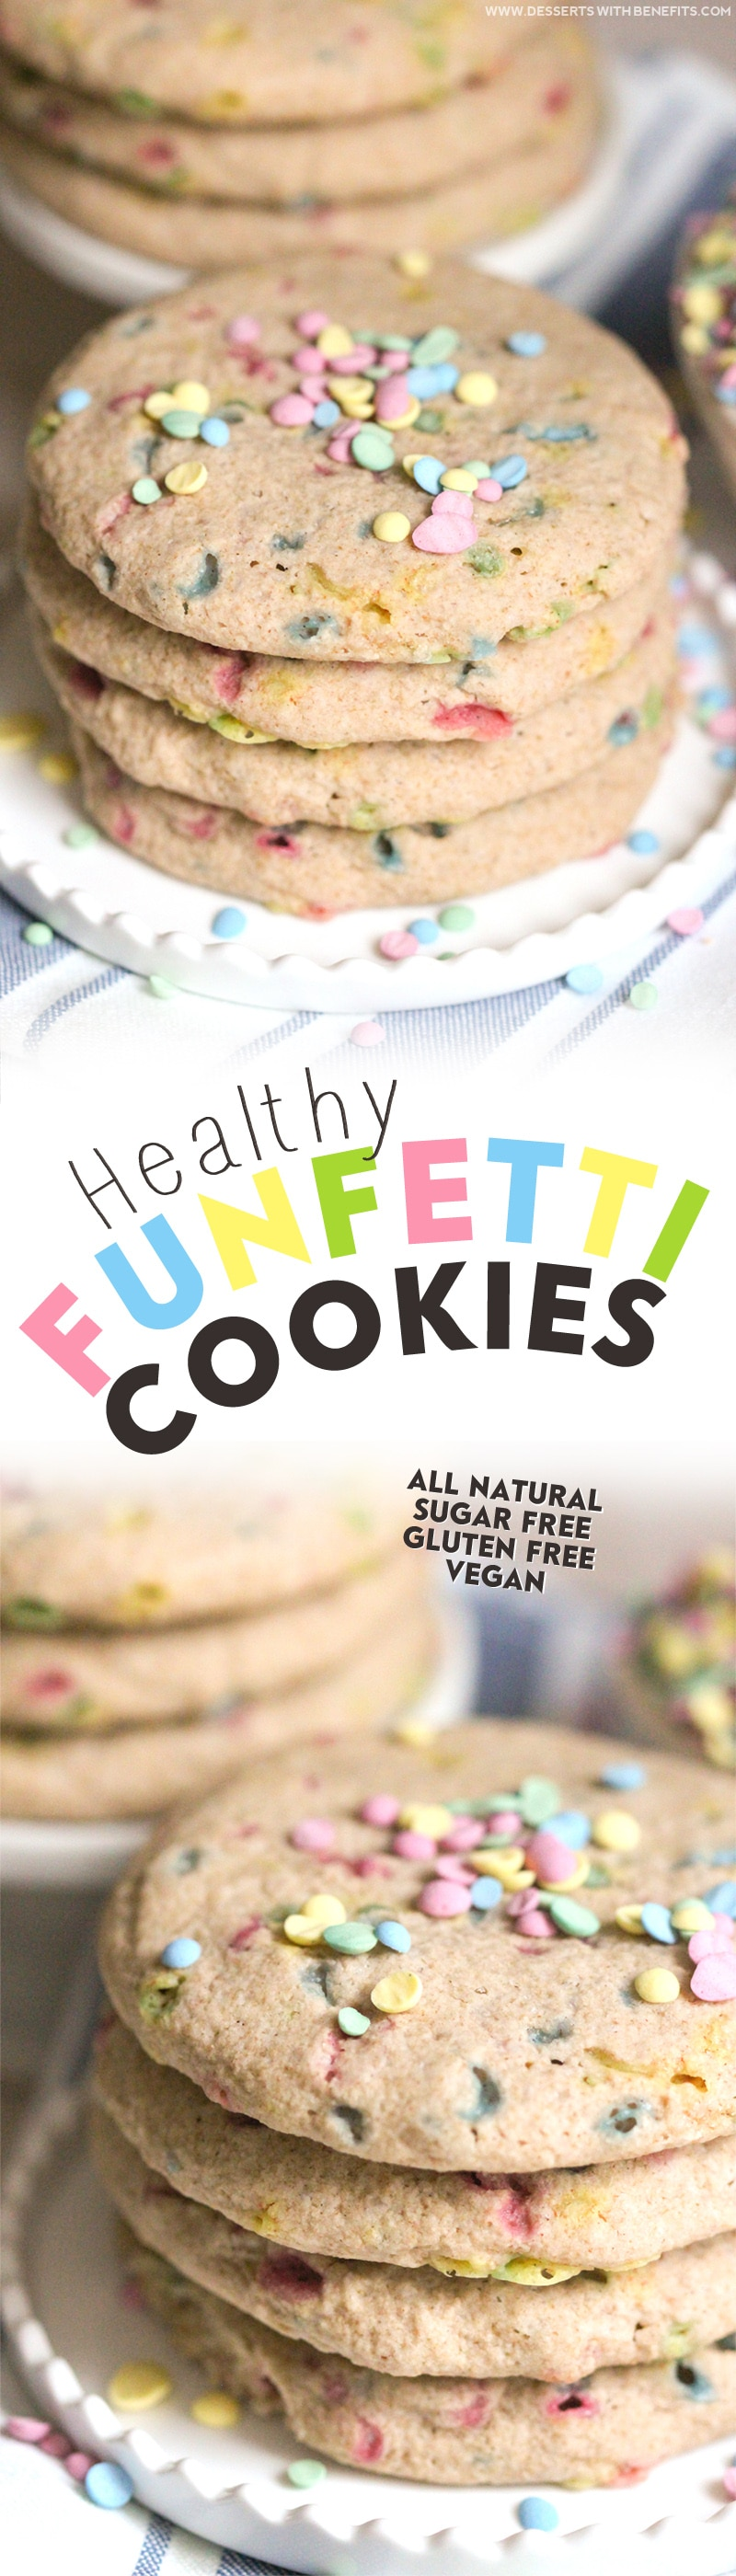 Healthy Funfetti Sugar Cookies recipe (all natural, sugar free, gluten free, dairy free, vegan) - Healthy Dessert Recipes at Desserts with Benefits